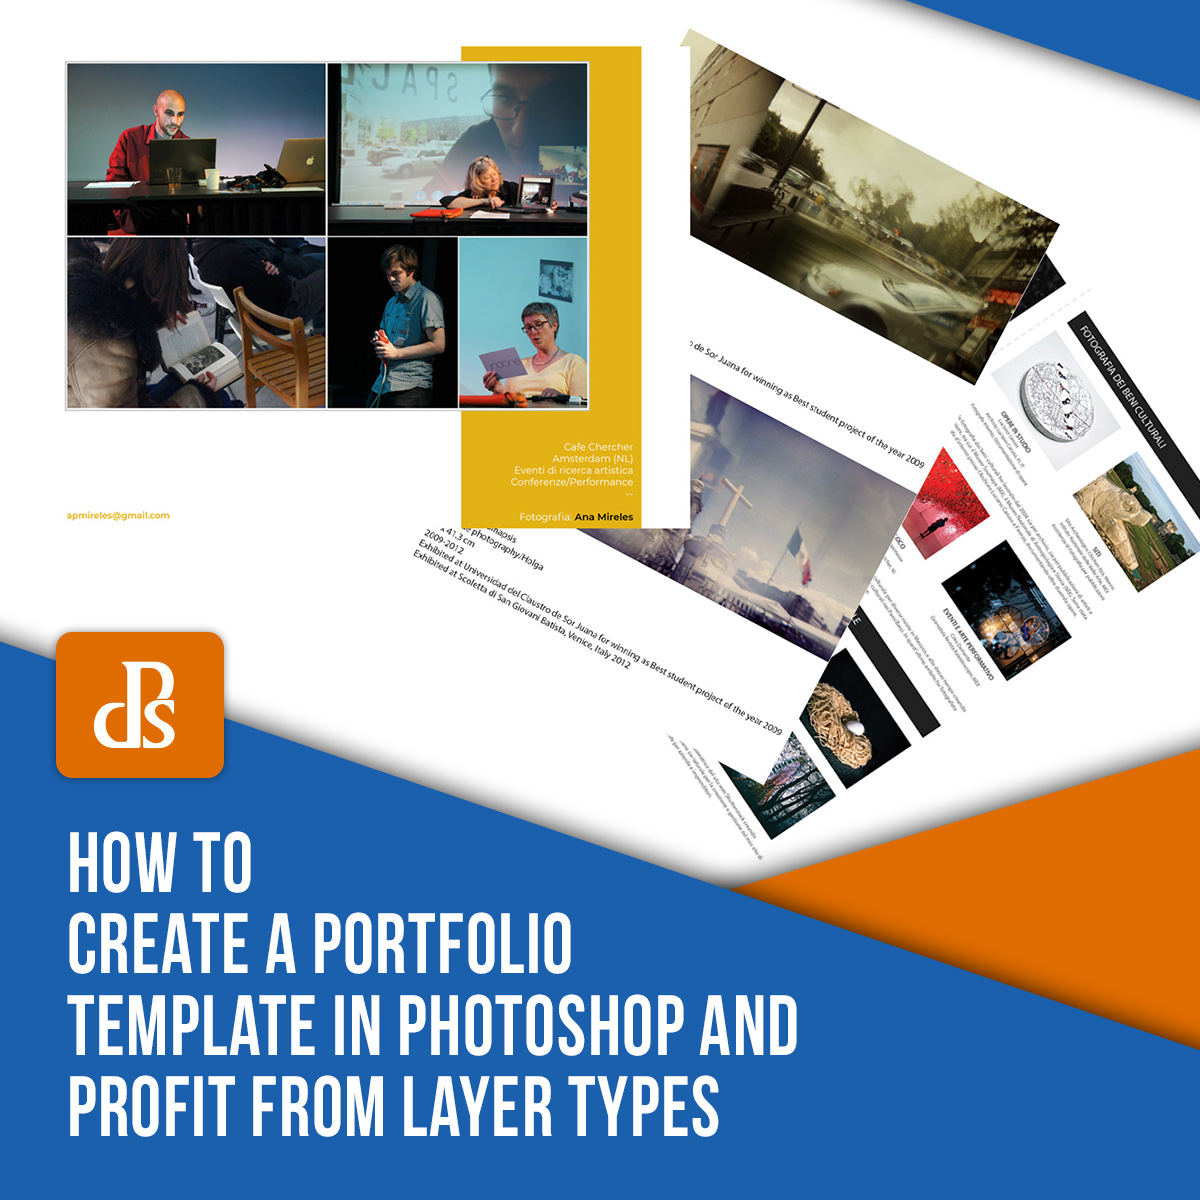 How to Create a Portfolio Template in Photoshop and Profit from Layer Types